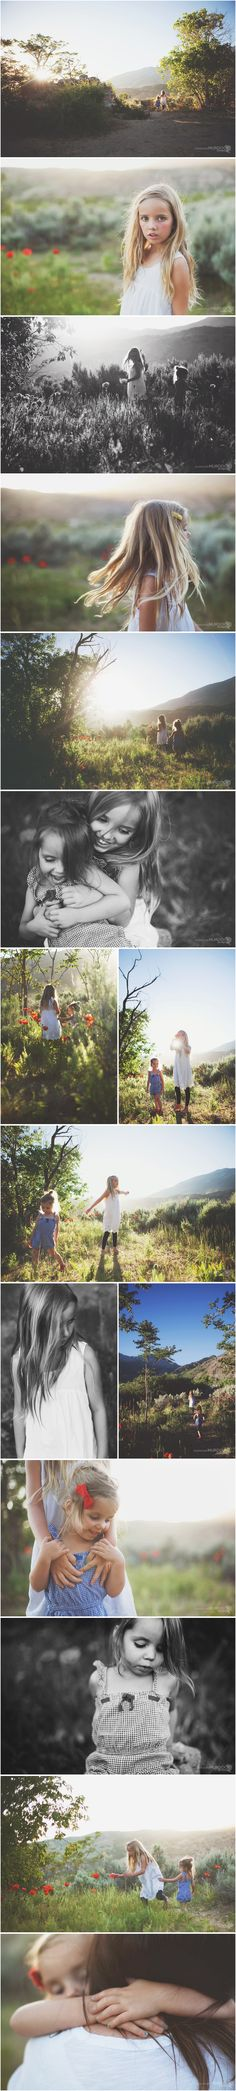 """11 on 11″ june edition, gorgeous children's session by Summer"